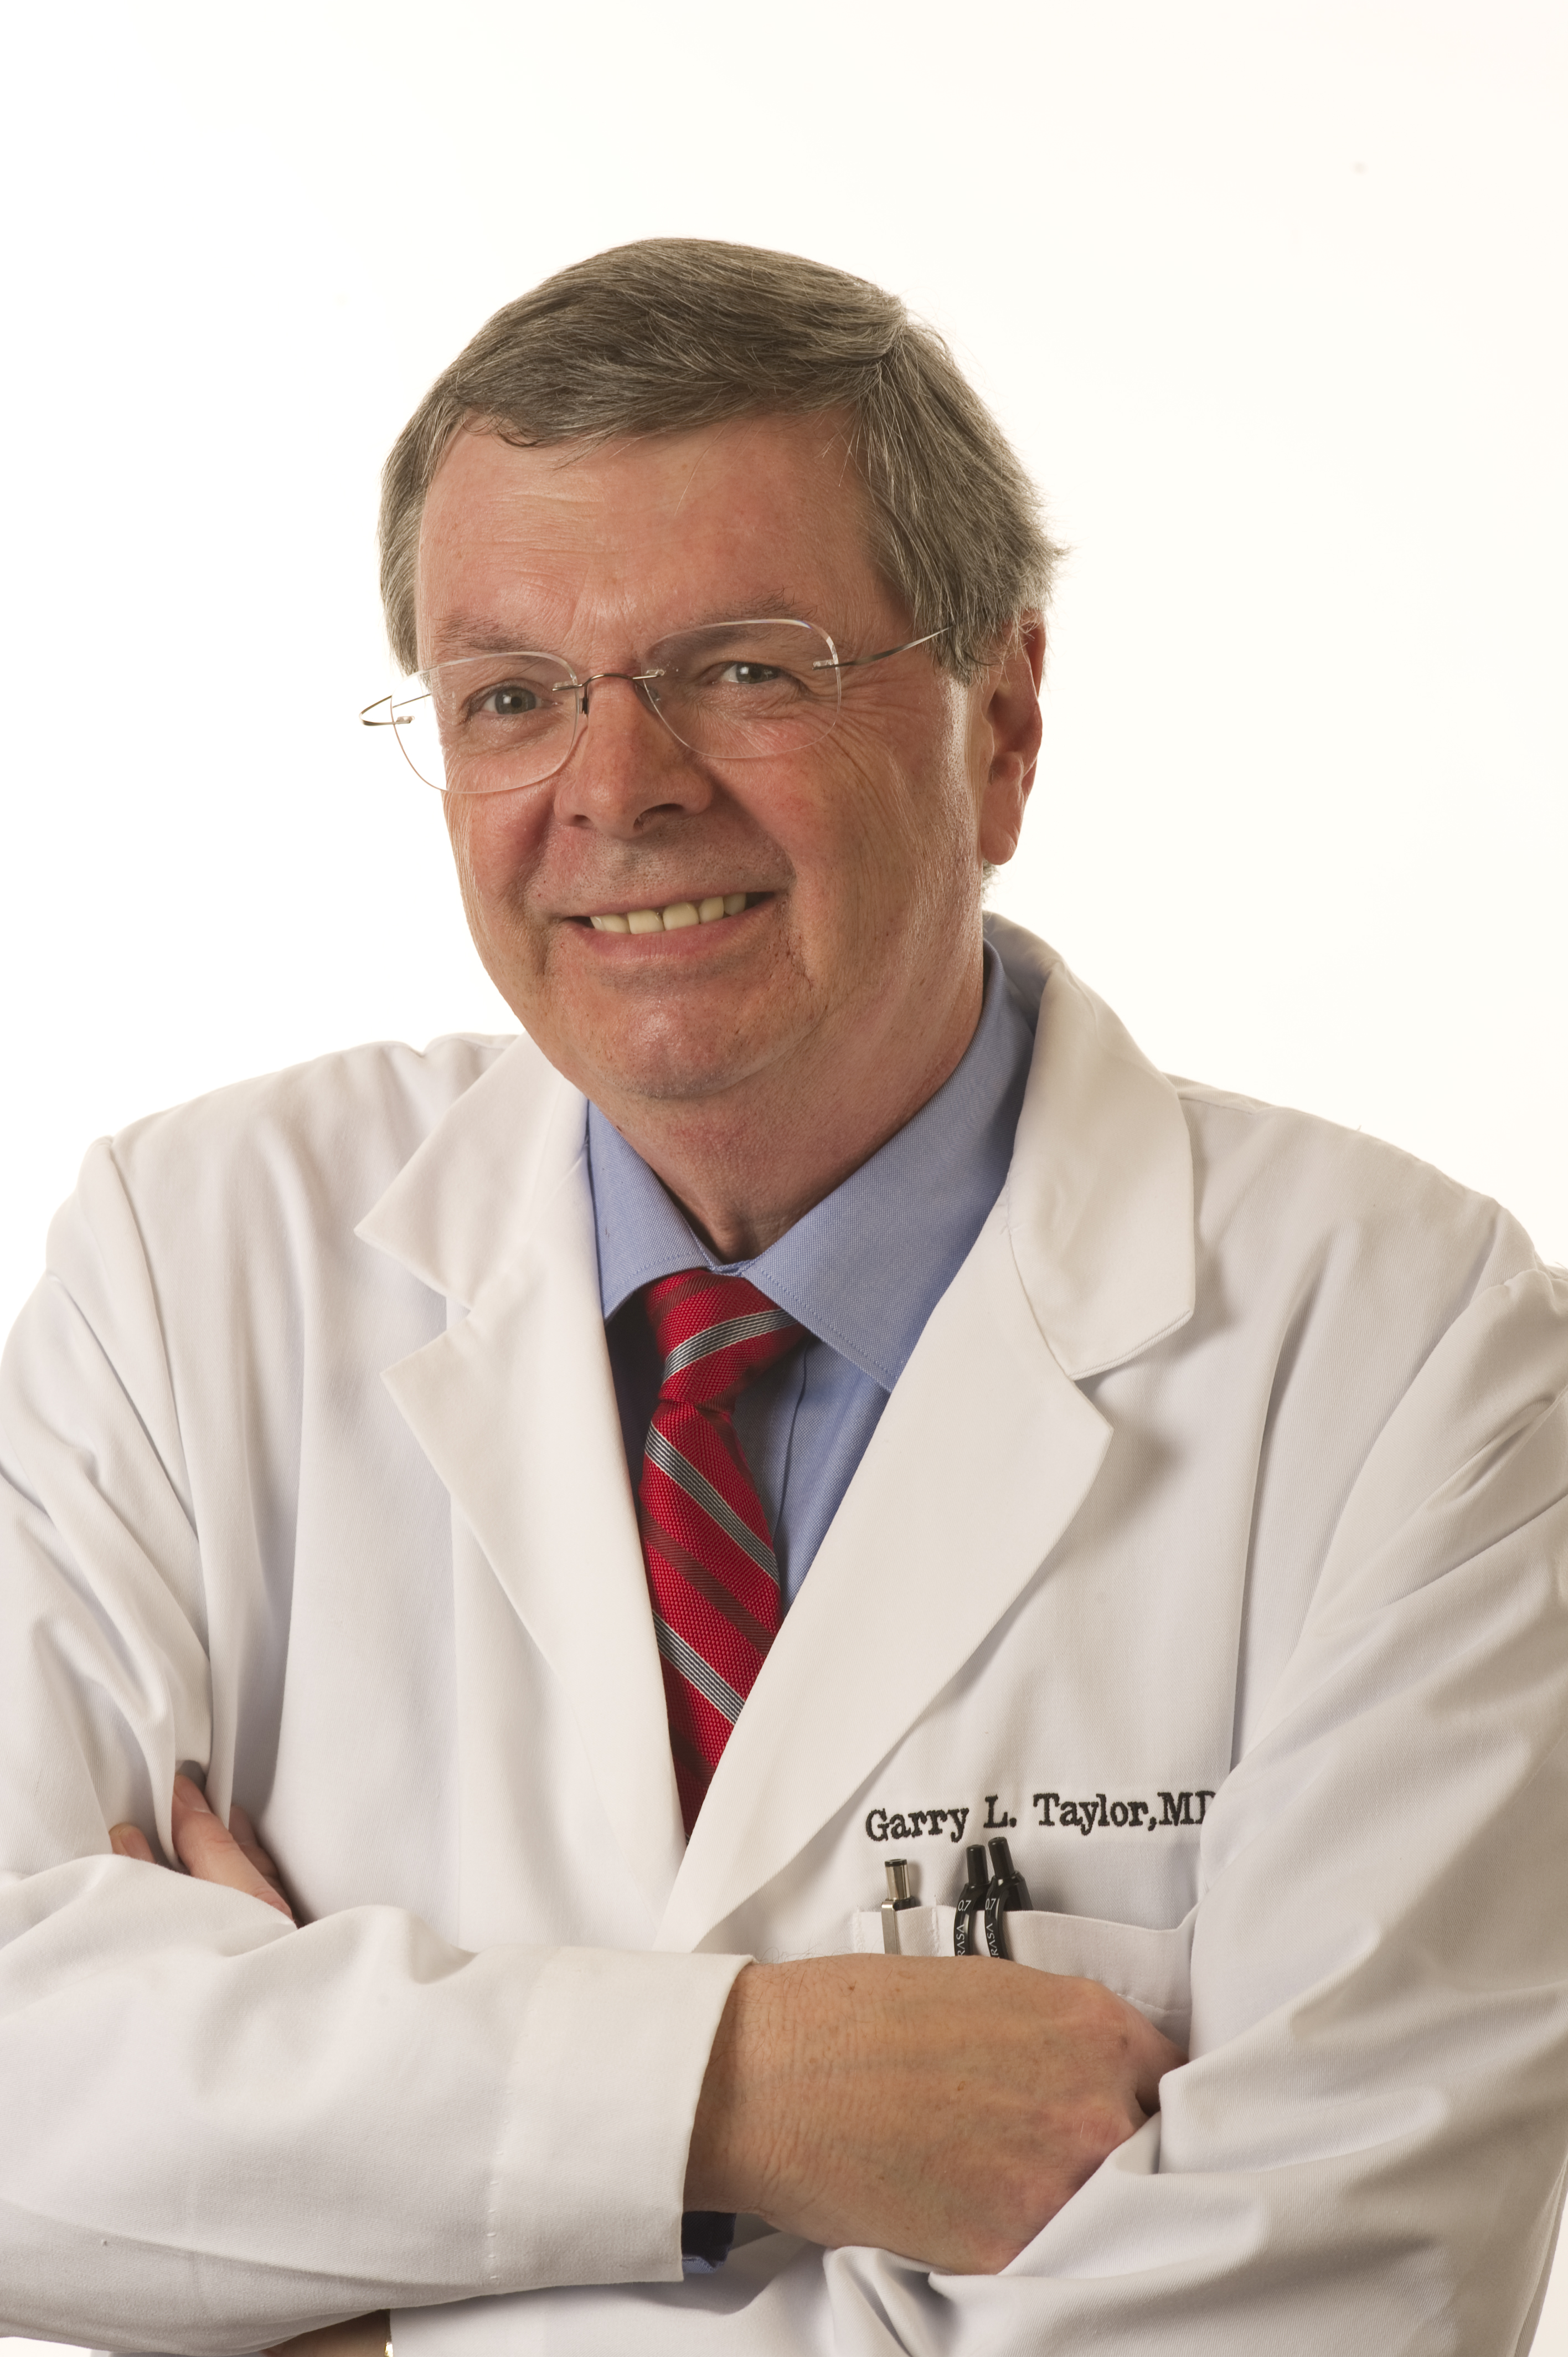 Garry Taylor, MD